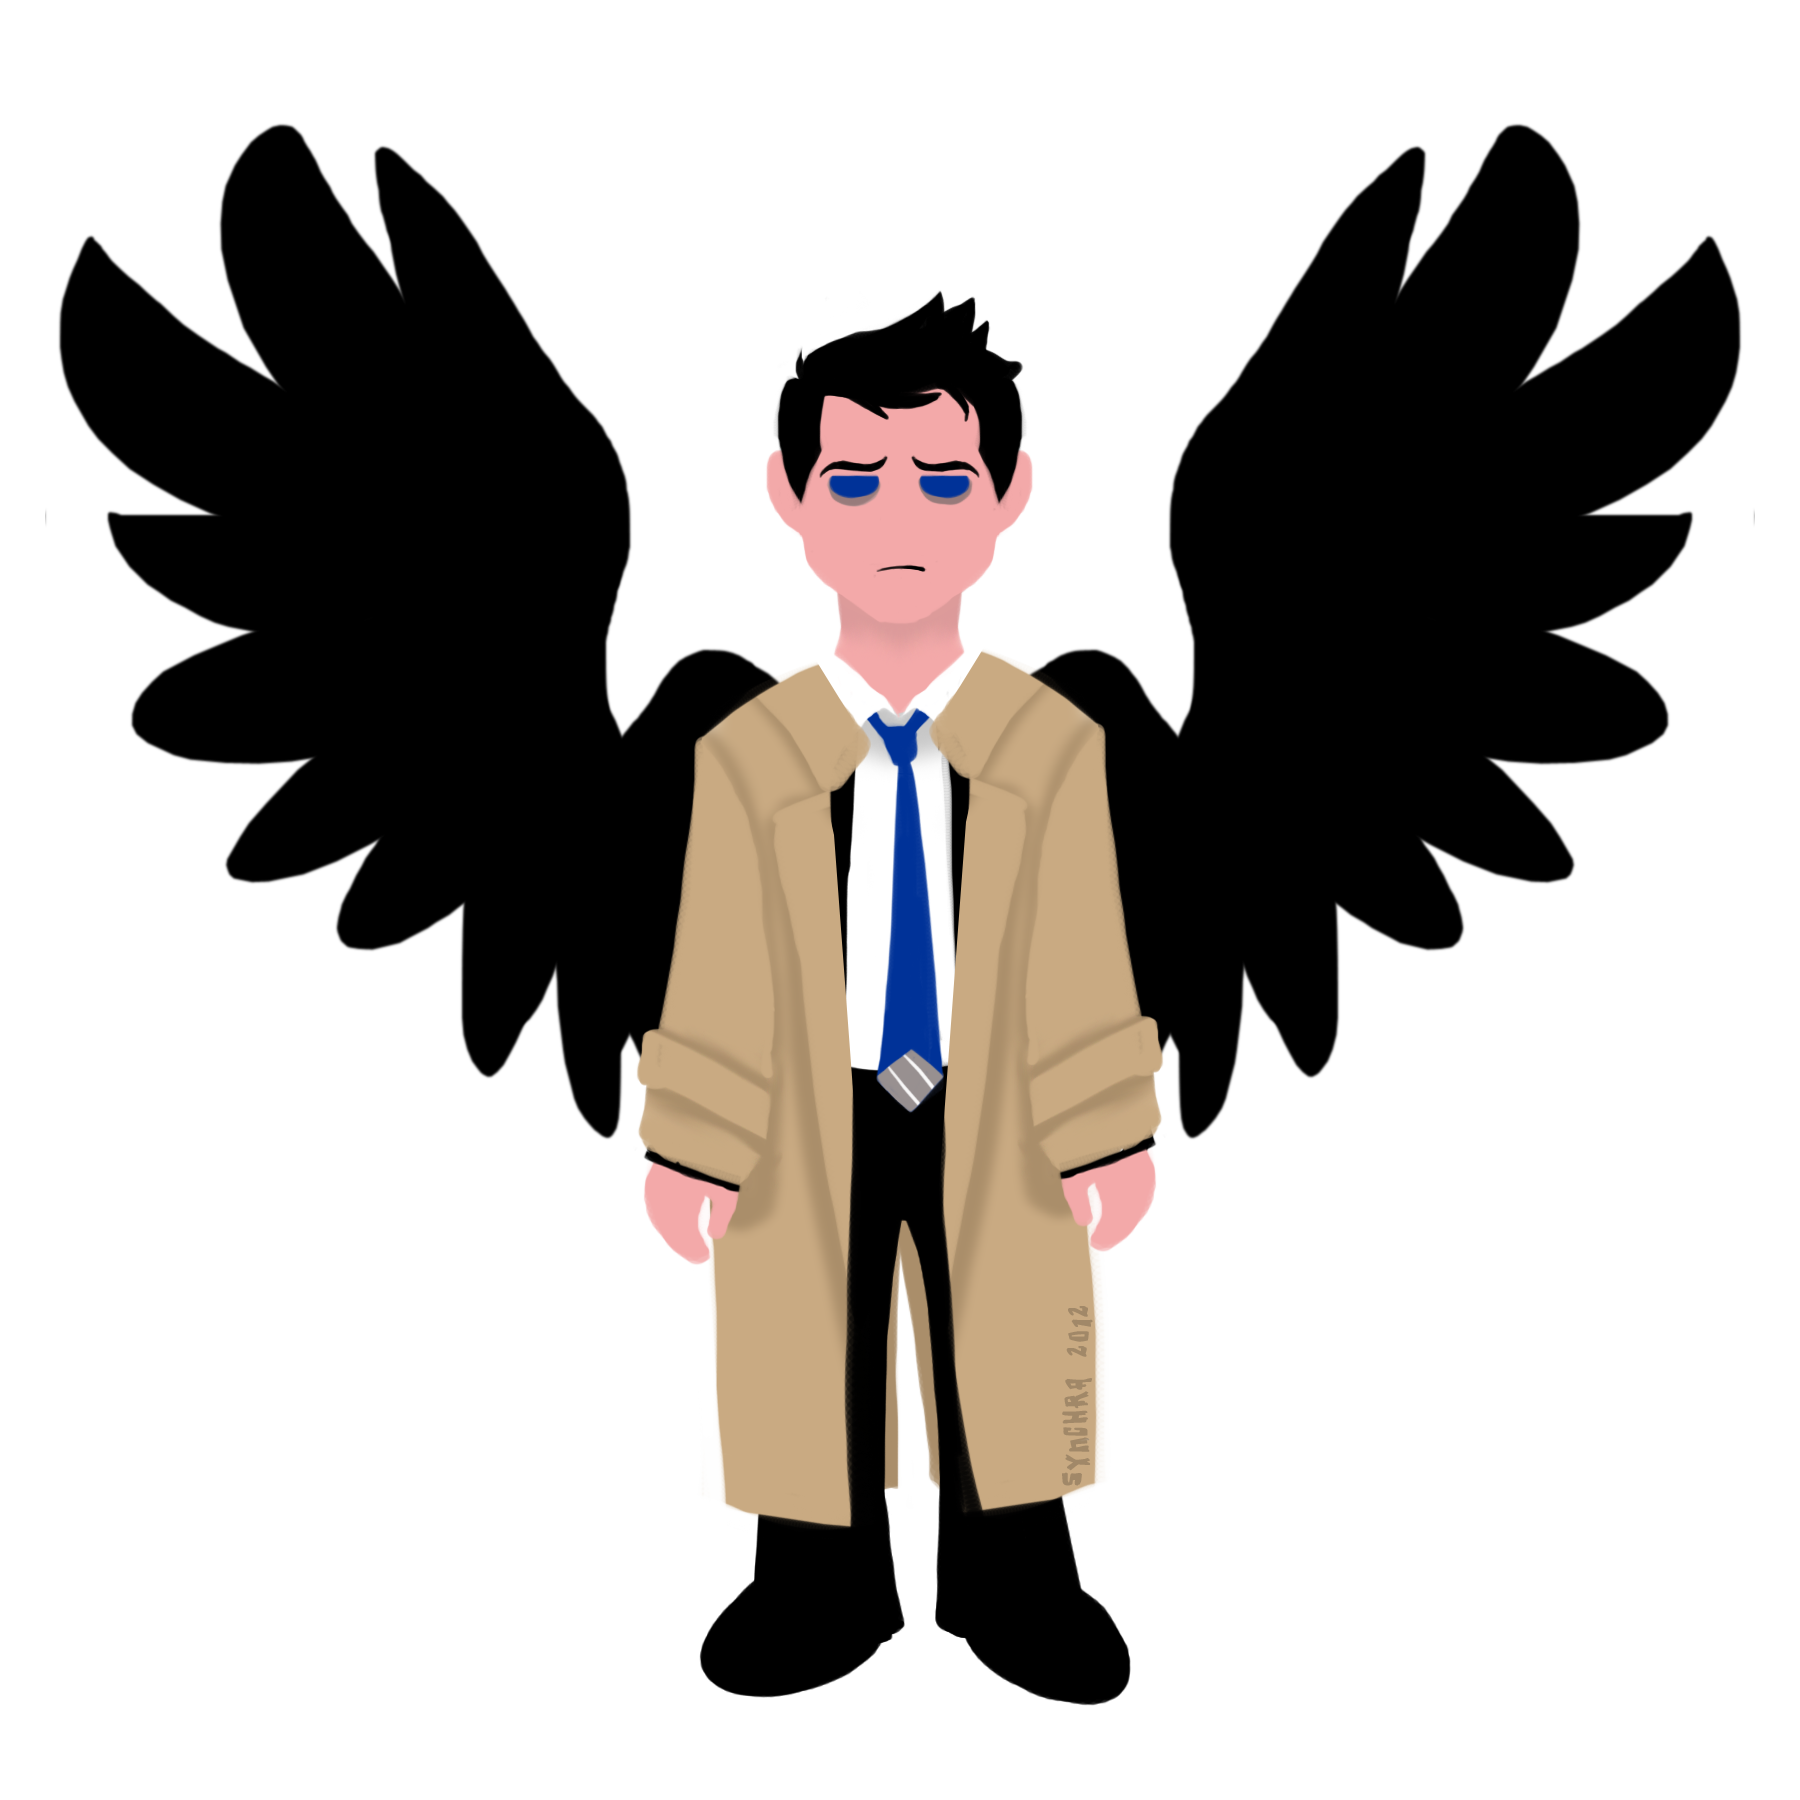 Supernatural clip castiel. Simple tree topper weasyl